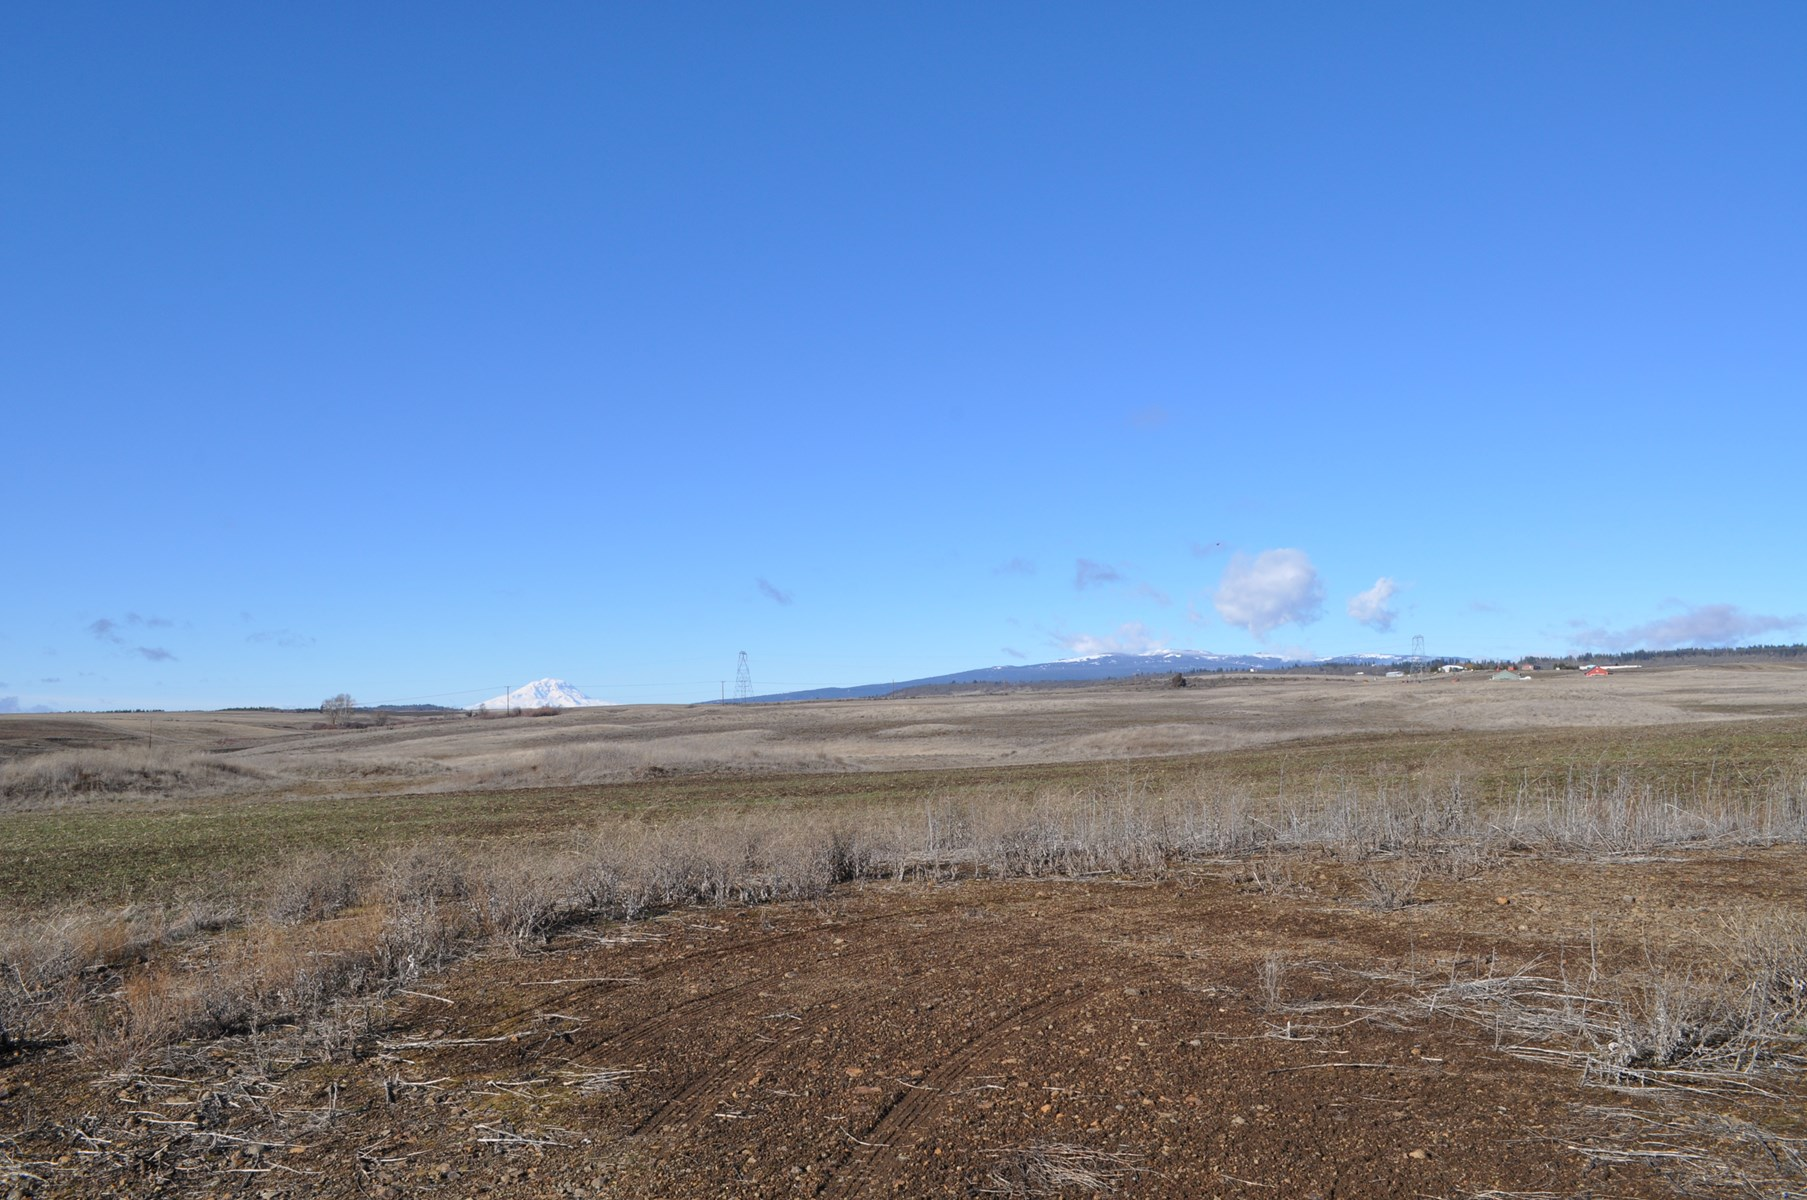 Land for sale in Goldendale Washington, near White Salmon